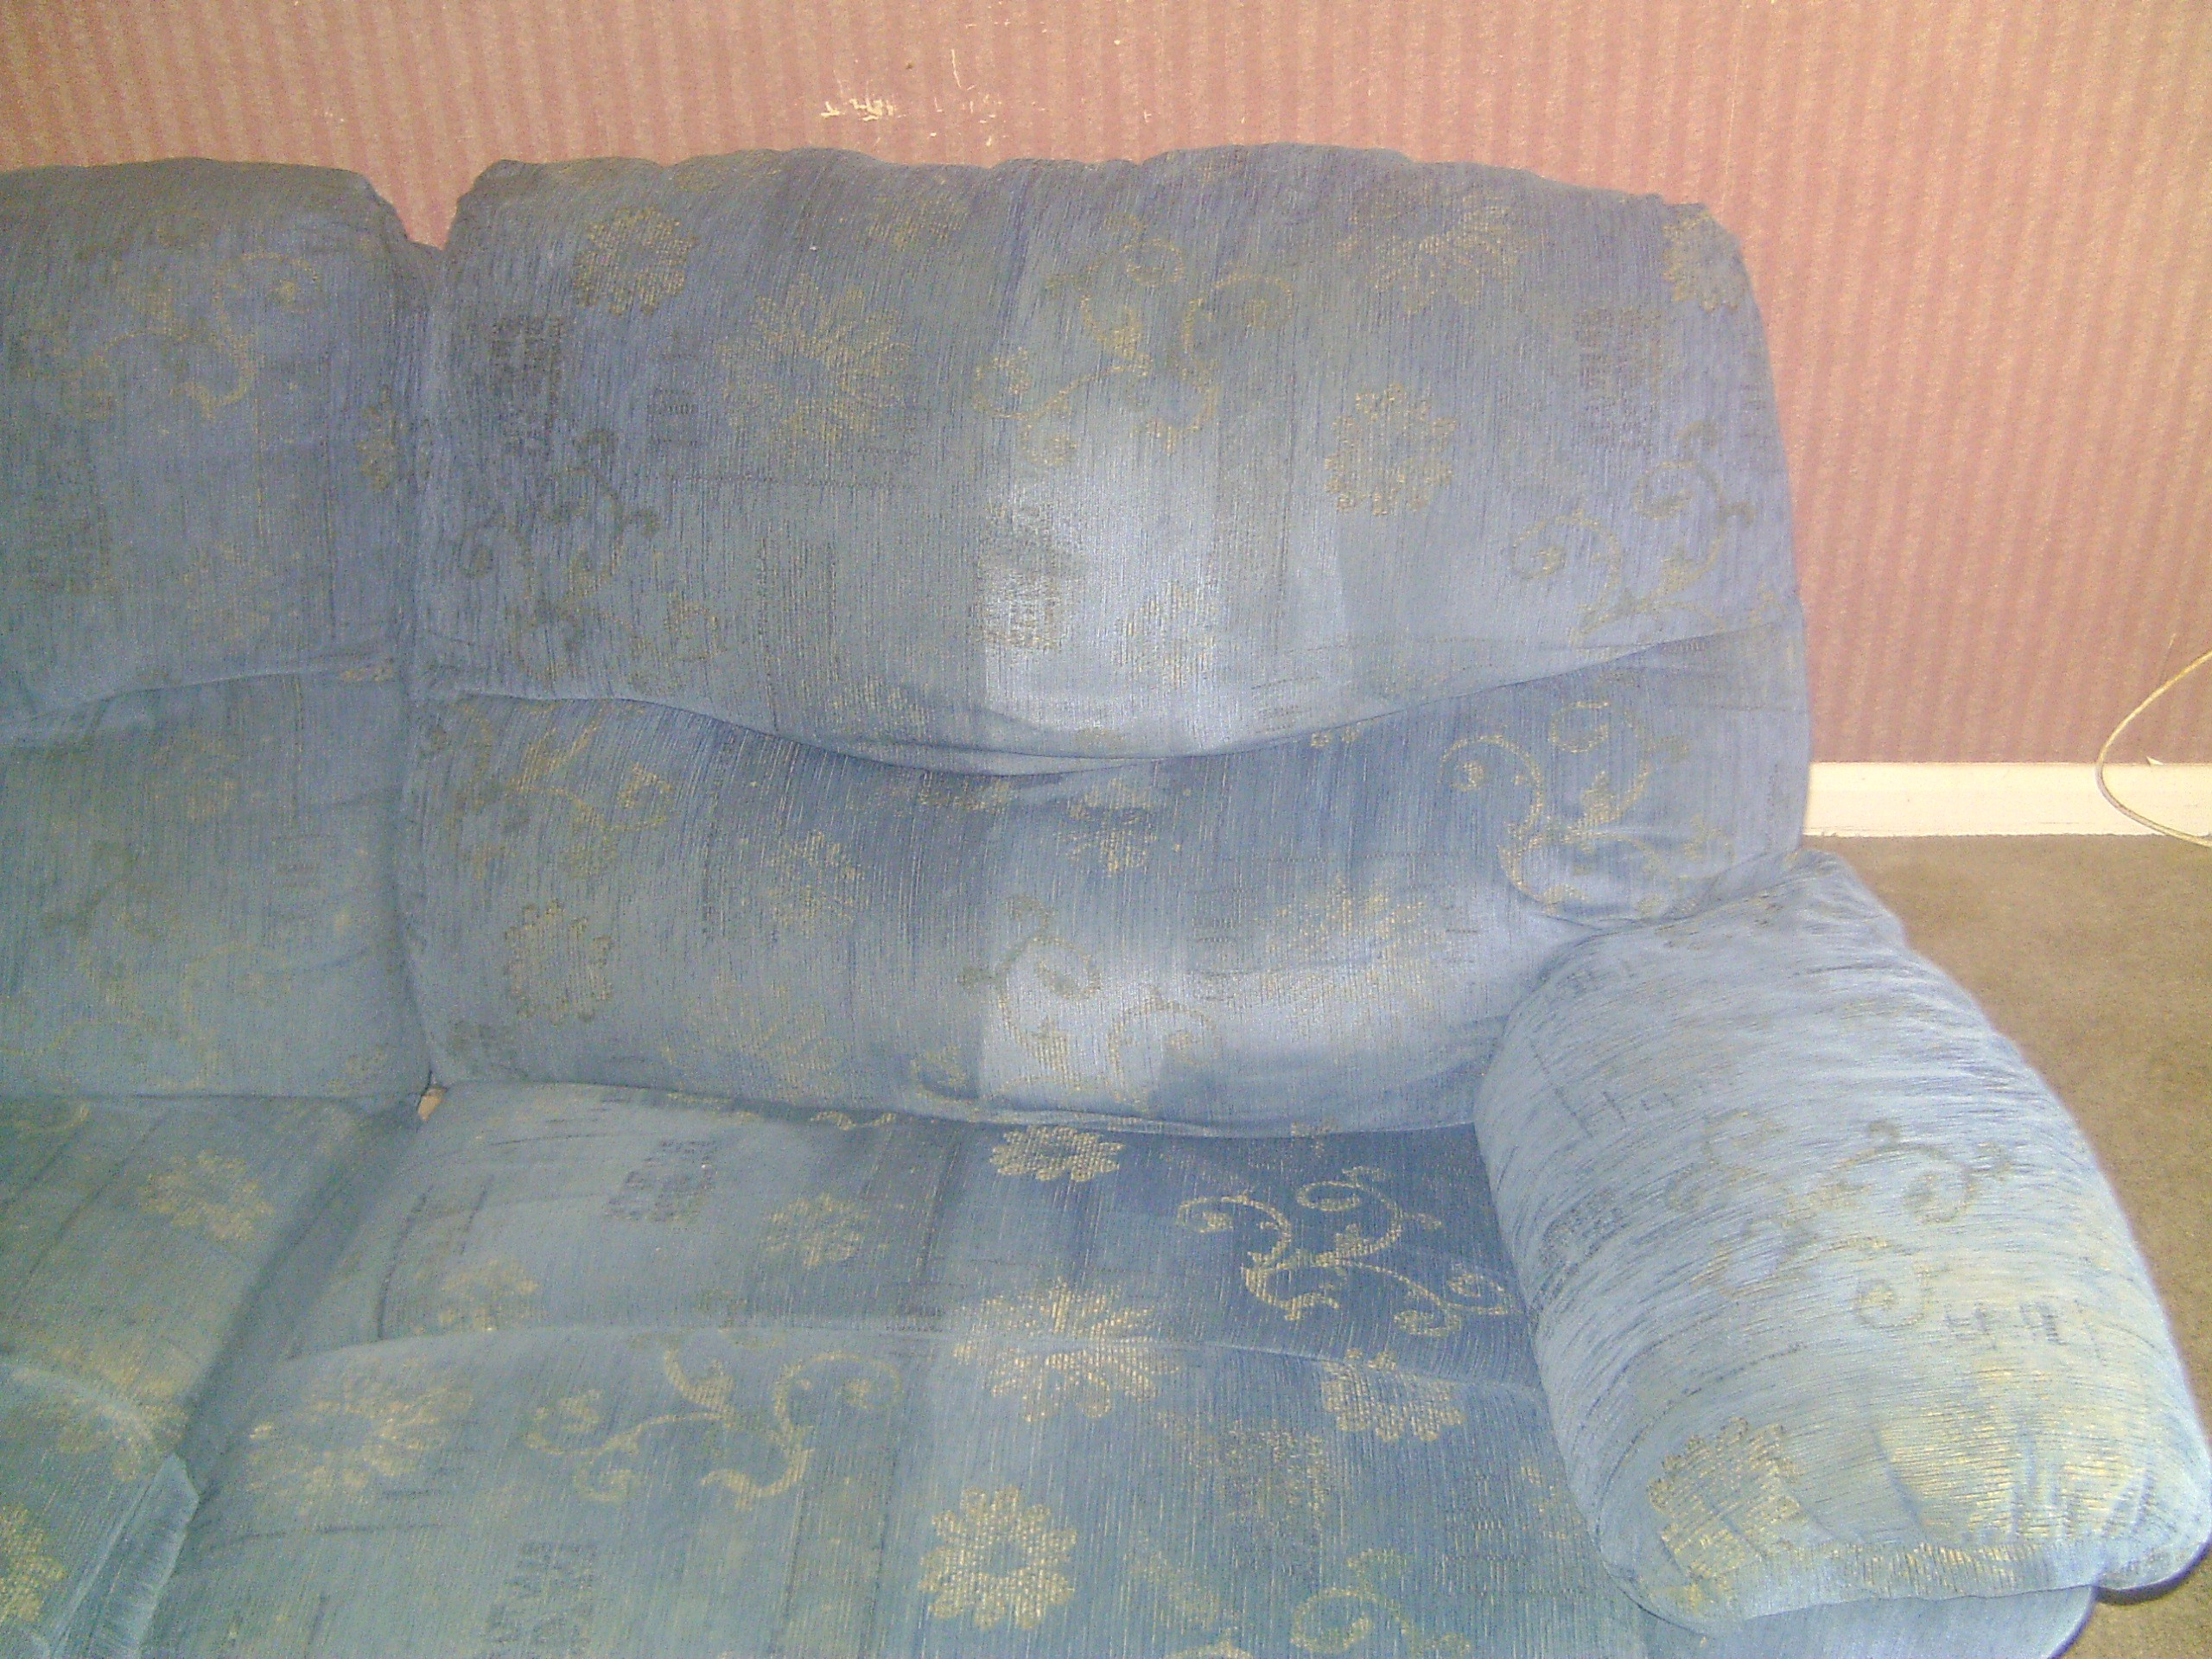 carpet cleaning gold coast image 103